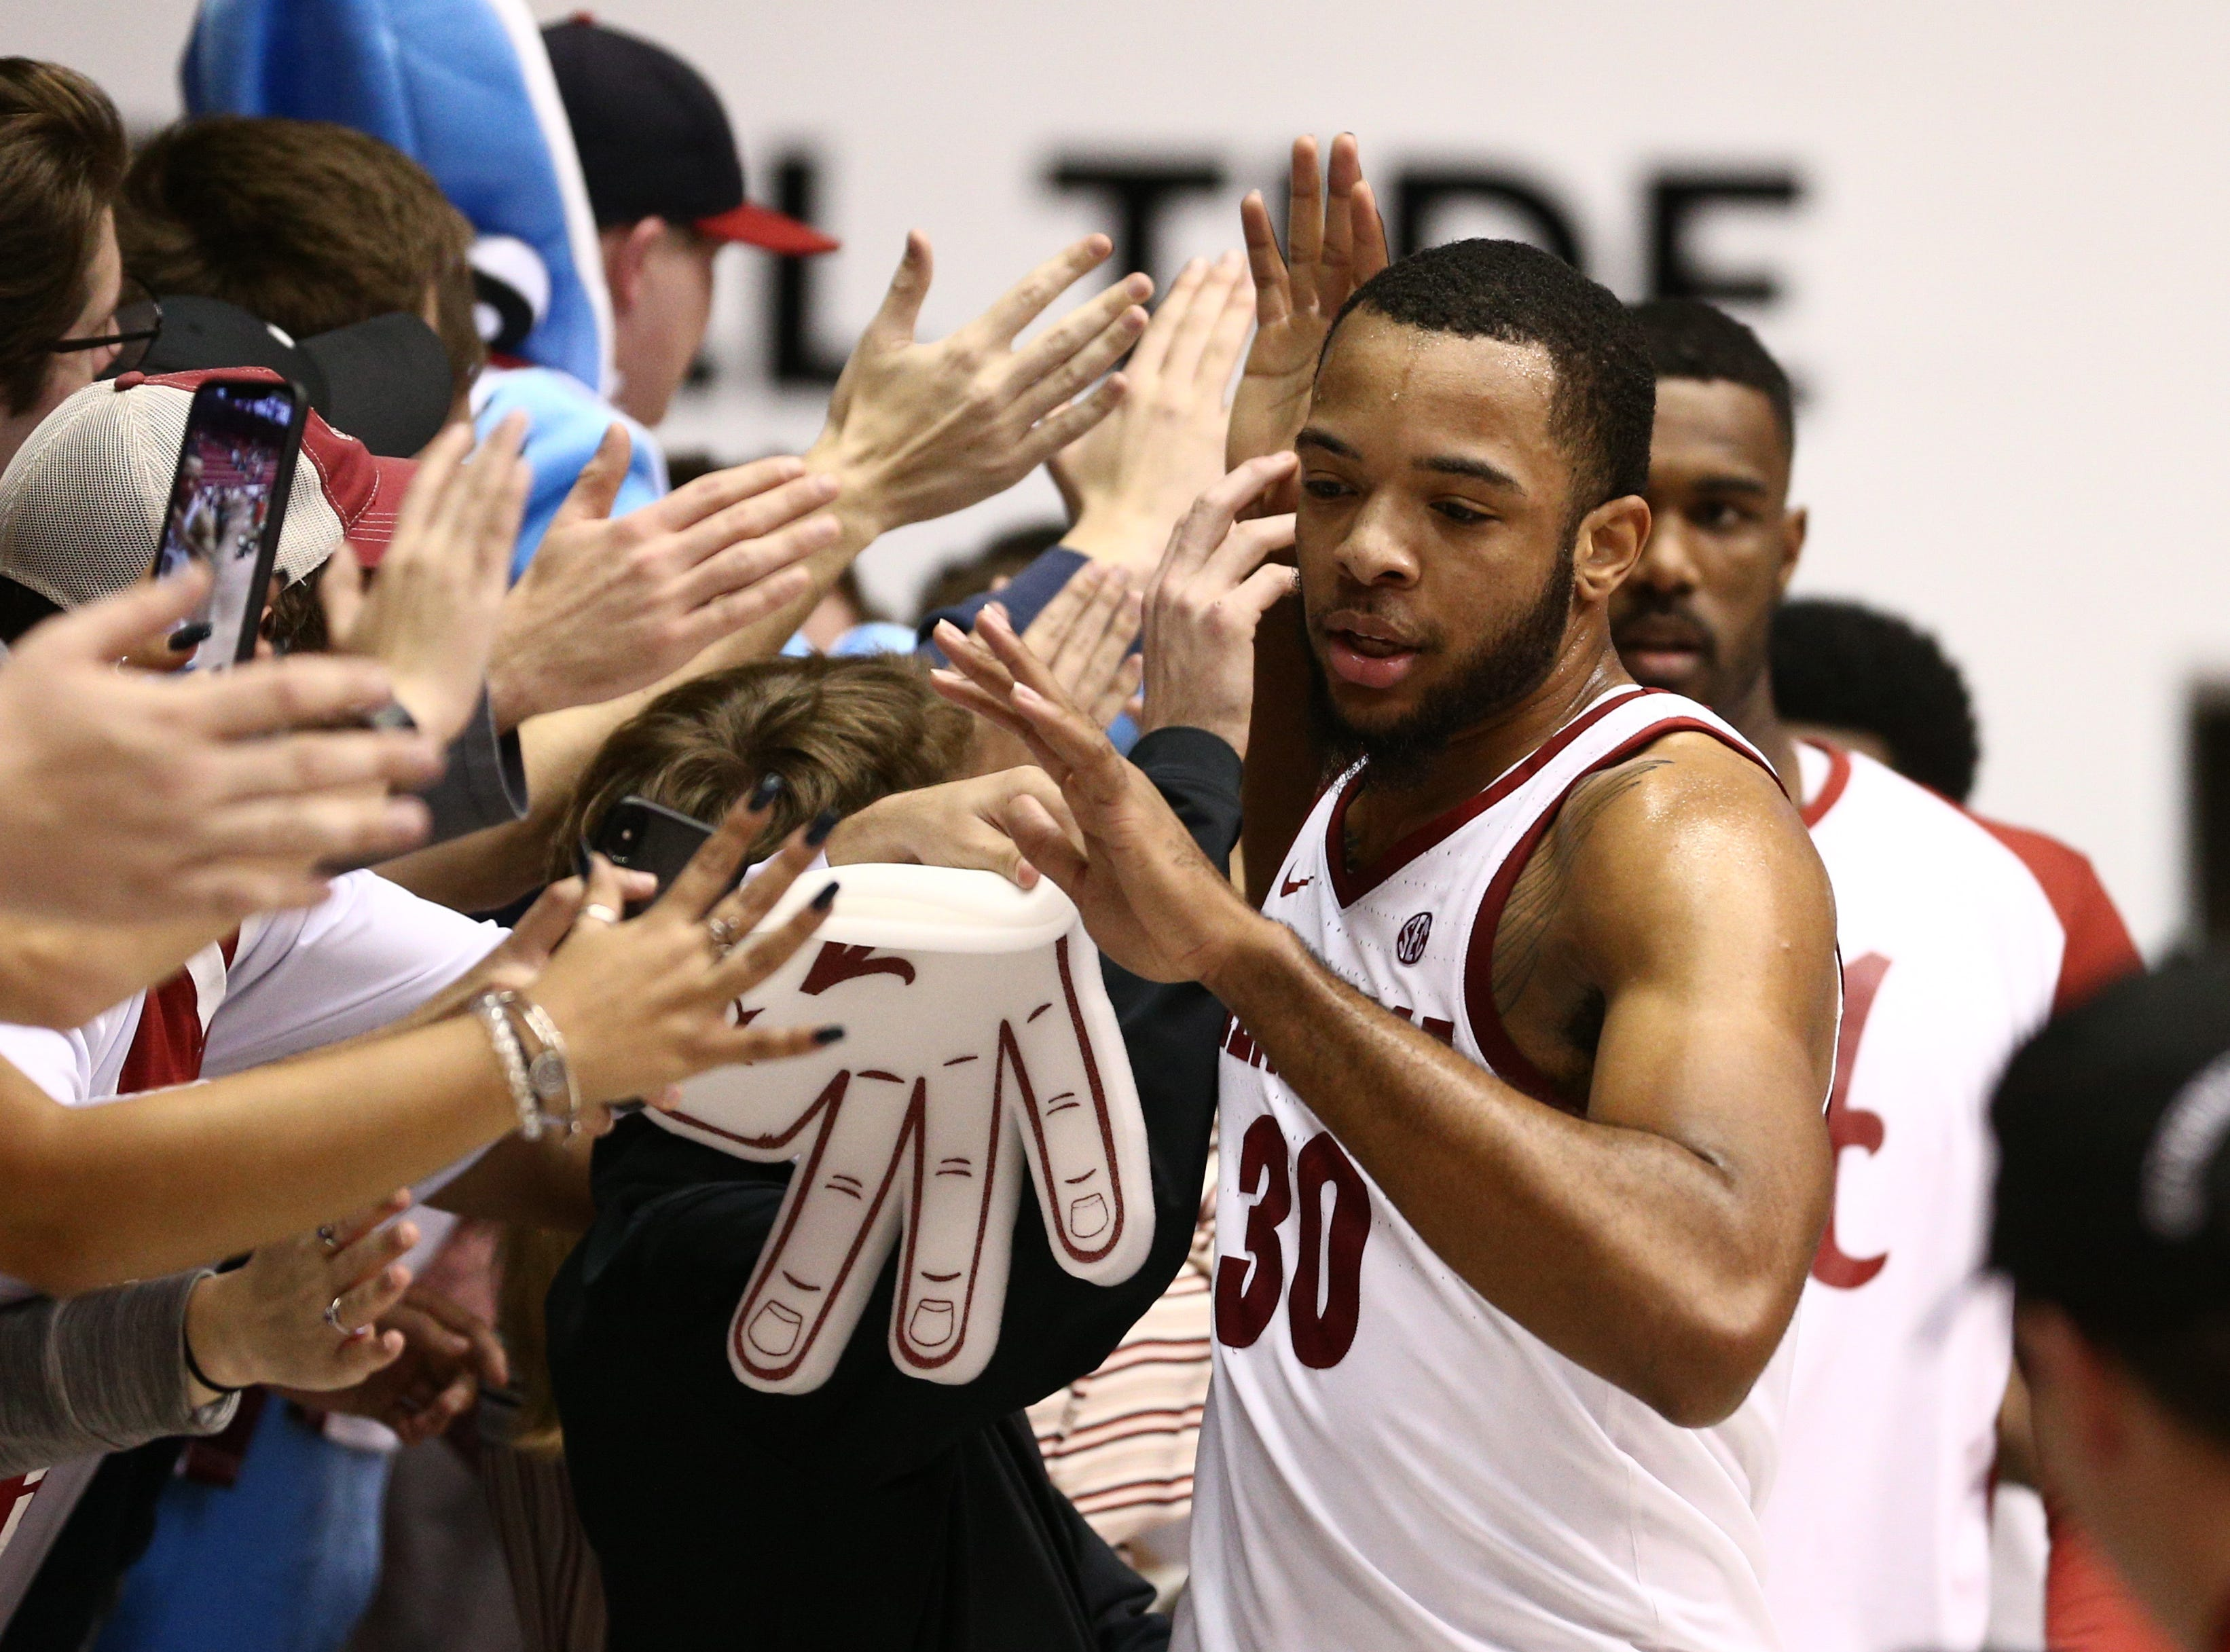 Jan 22, 2019; Tuscaloosa, AL, USA; Alabama Crimson Tide forward Galin Smith (30) celebrates with fans after defeating the Mississippi Rebels at Coleman Coliseum. Mandatory Credit: Marvin Gentry-USA TODAY Sports